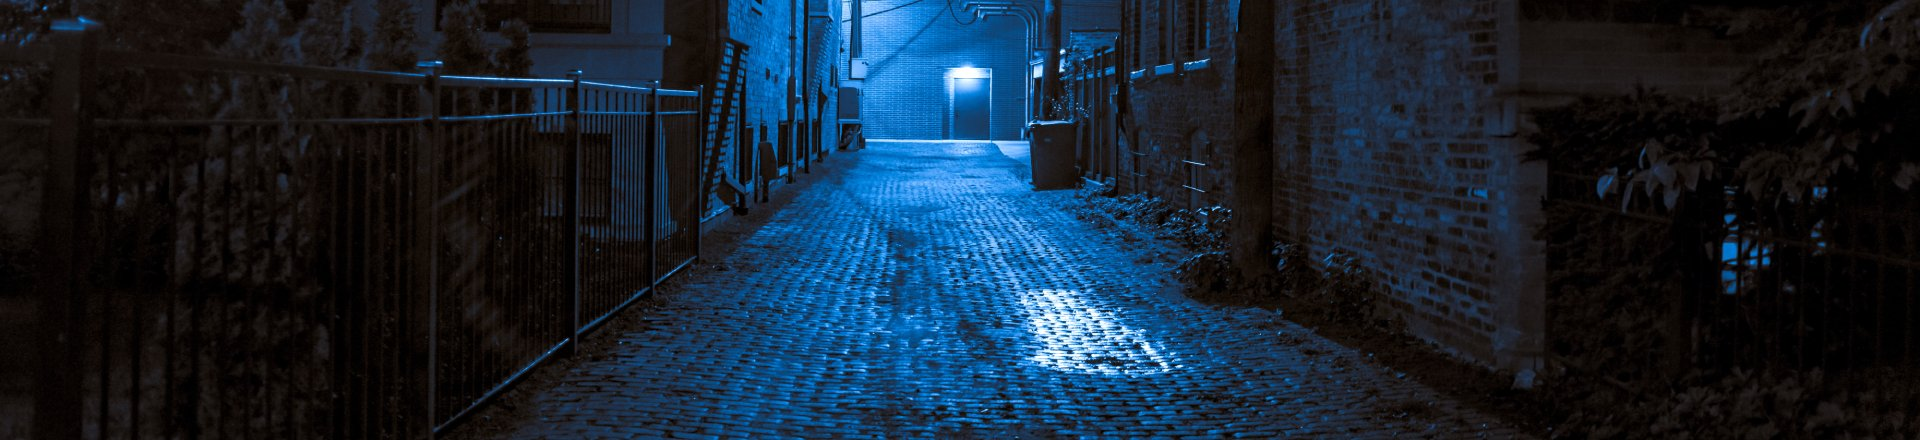 Dark Alley, Inadequate Lighting Lawsuit Claims Lawyer